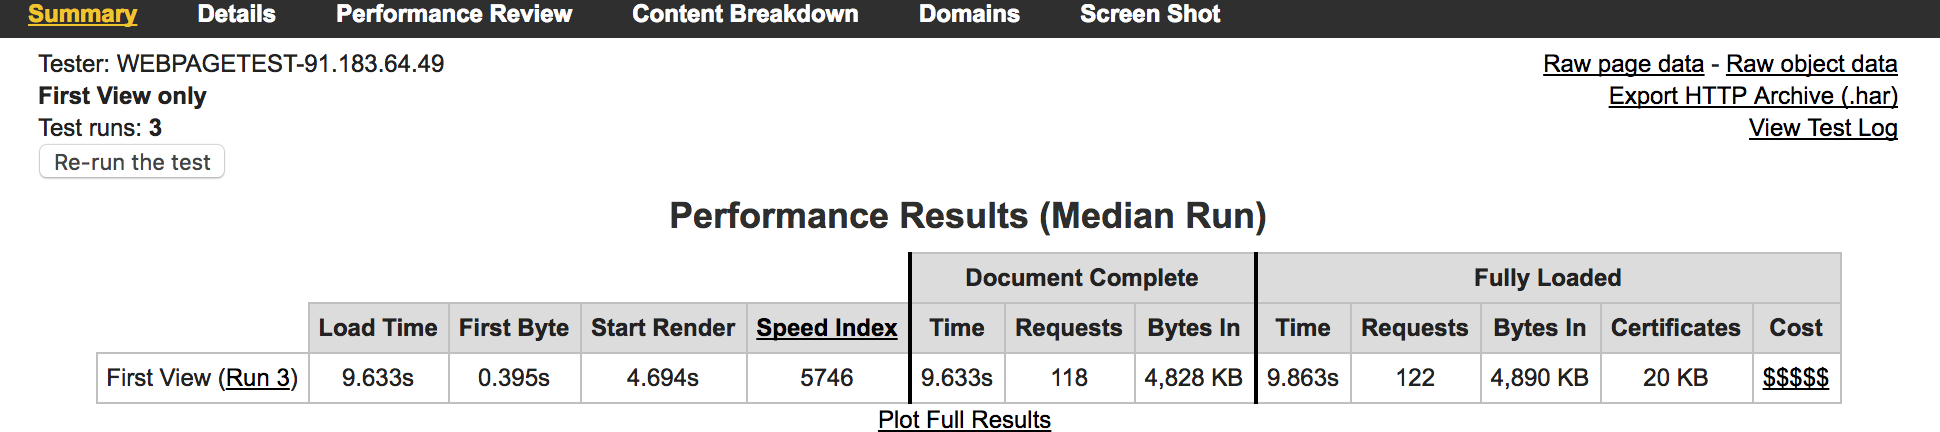 webpagetest-performance-summary